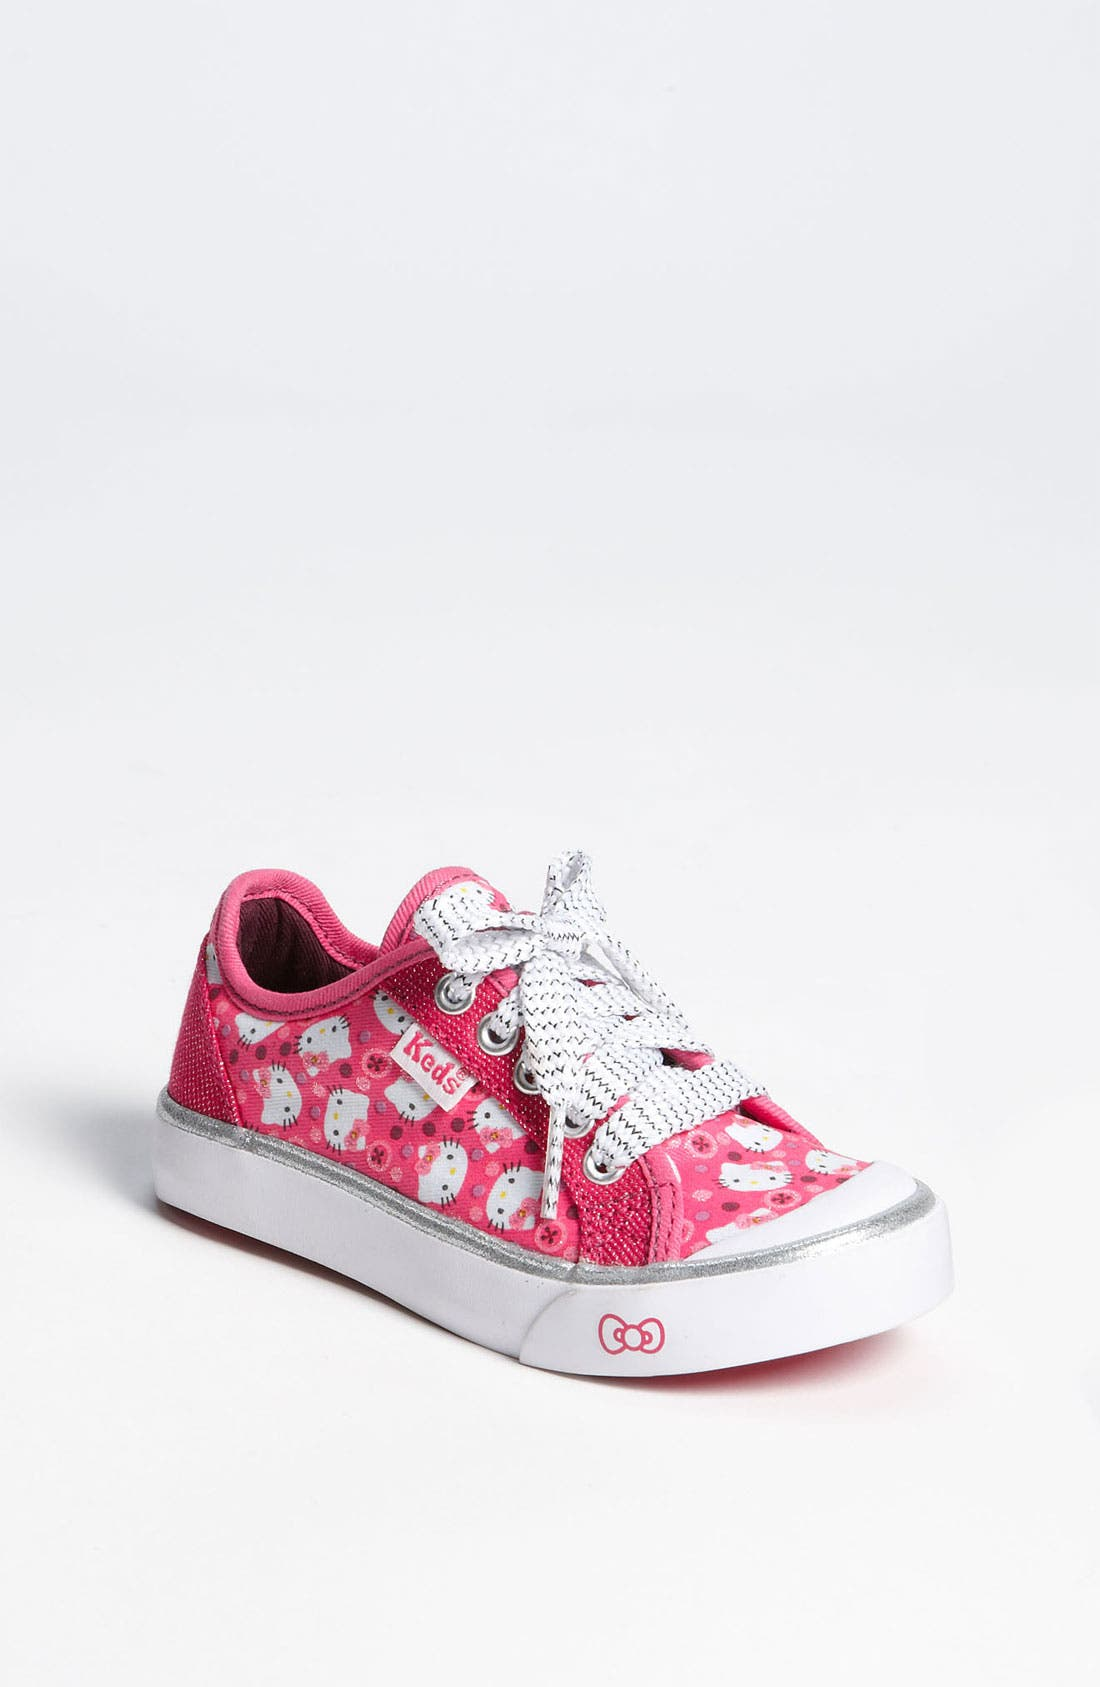 Alternate Image 1 Selected - Keds® 'Mimmy' Sneaker (Walker & Toddler)